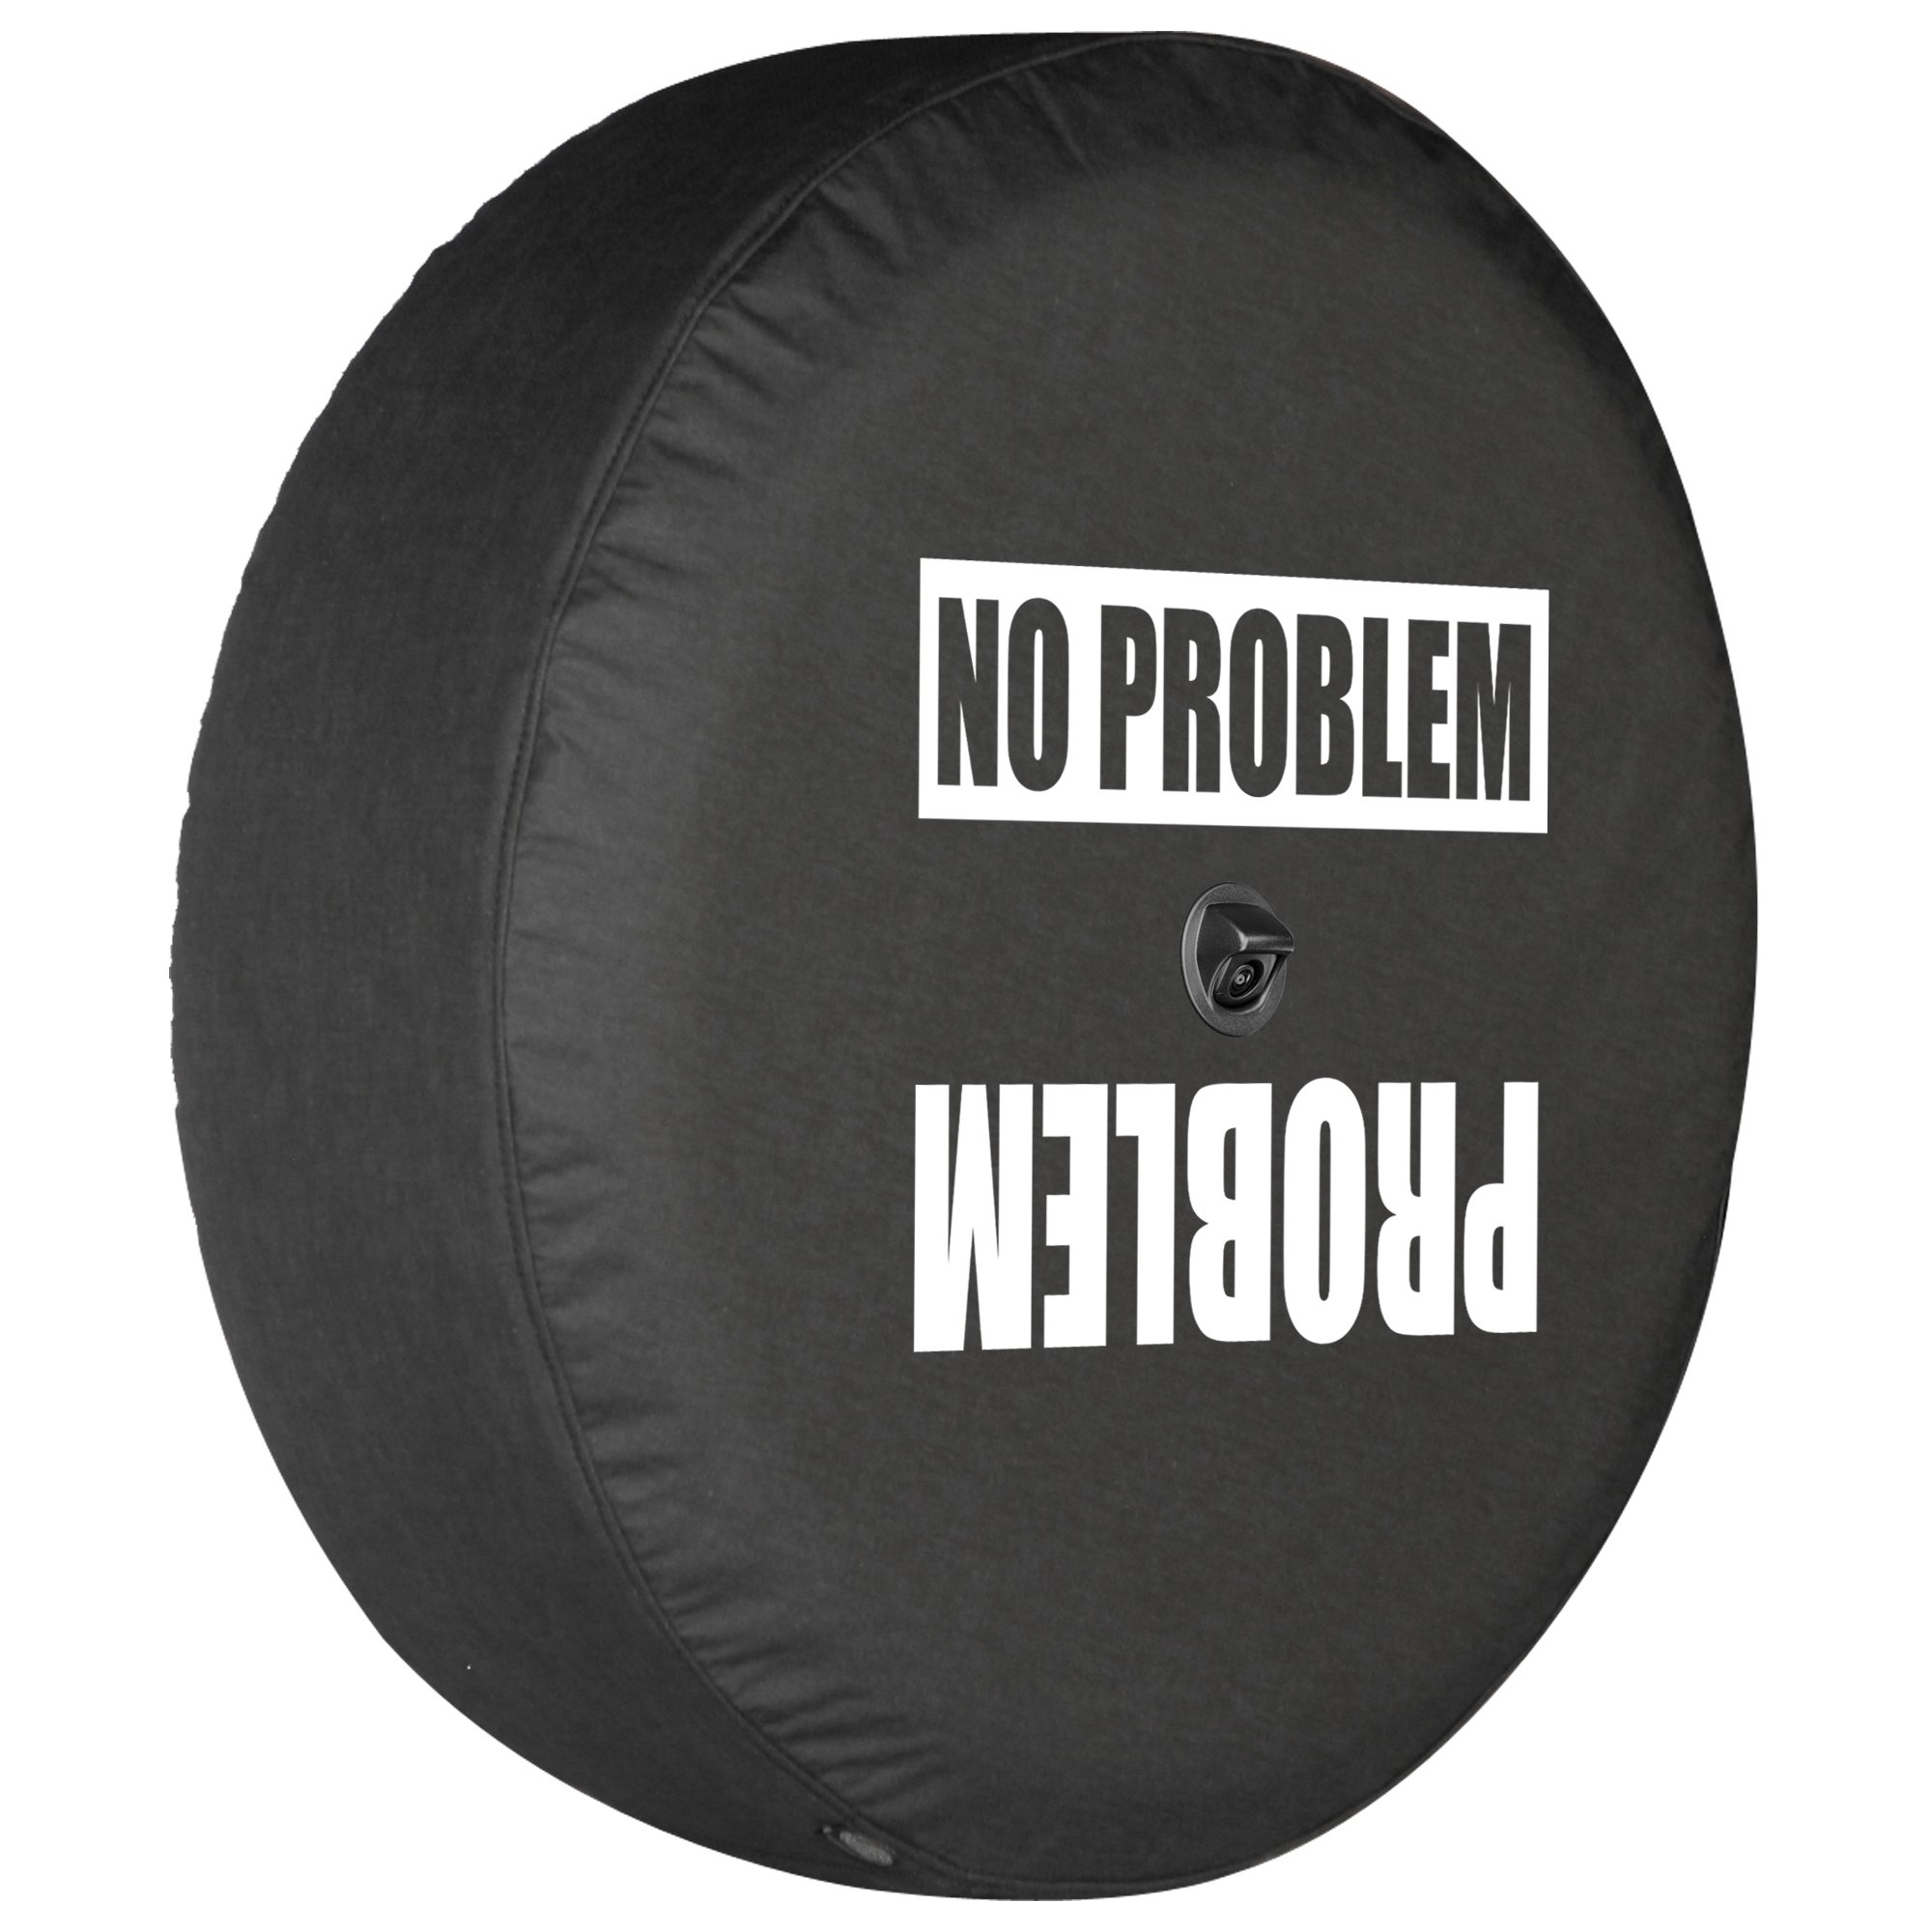 American Educational Products Marine Grade Top Quality Blank Black Dealer Quality Spare Tire Cover Vinyl Black 29 in